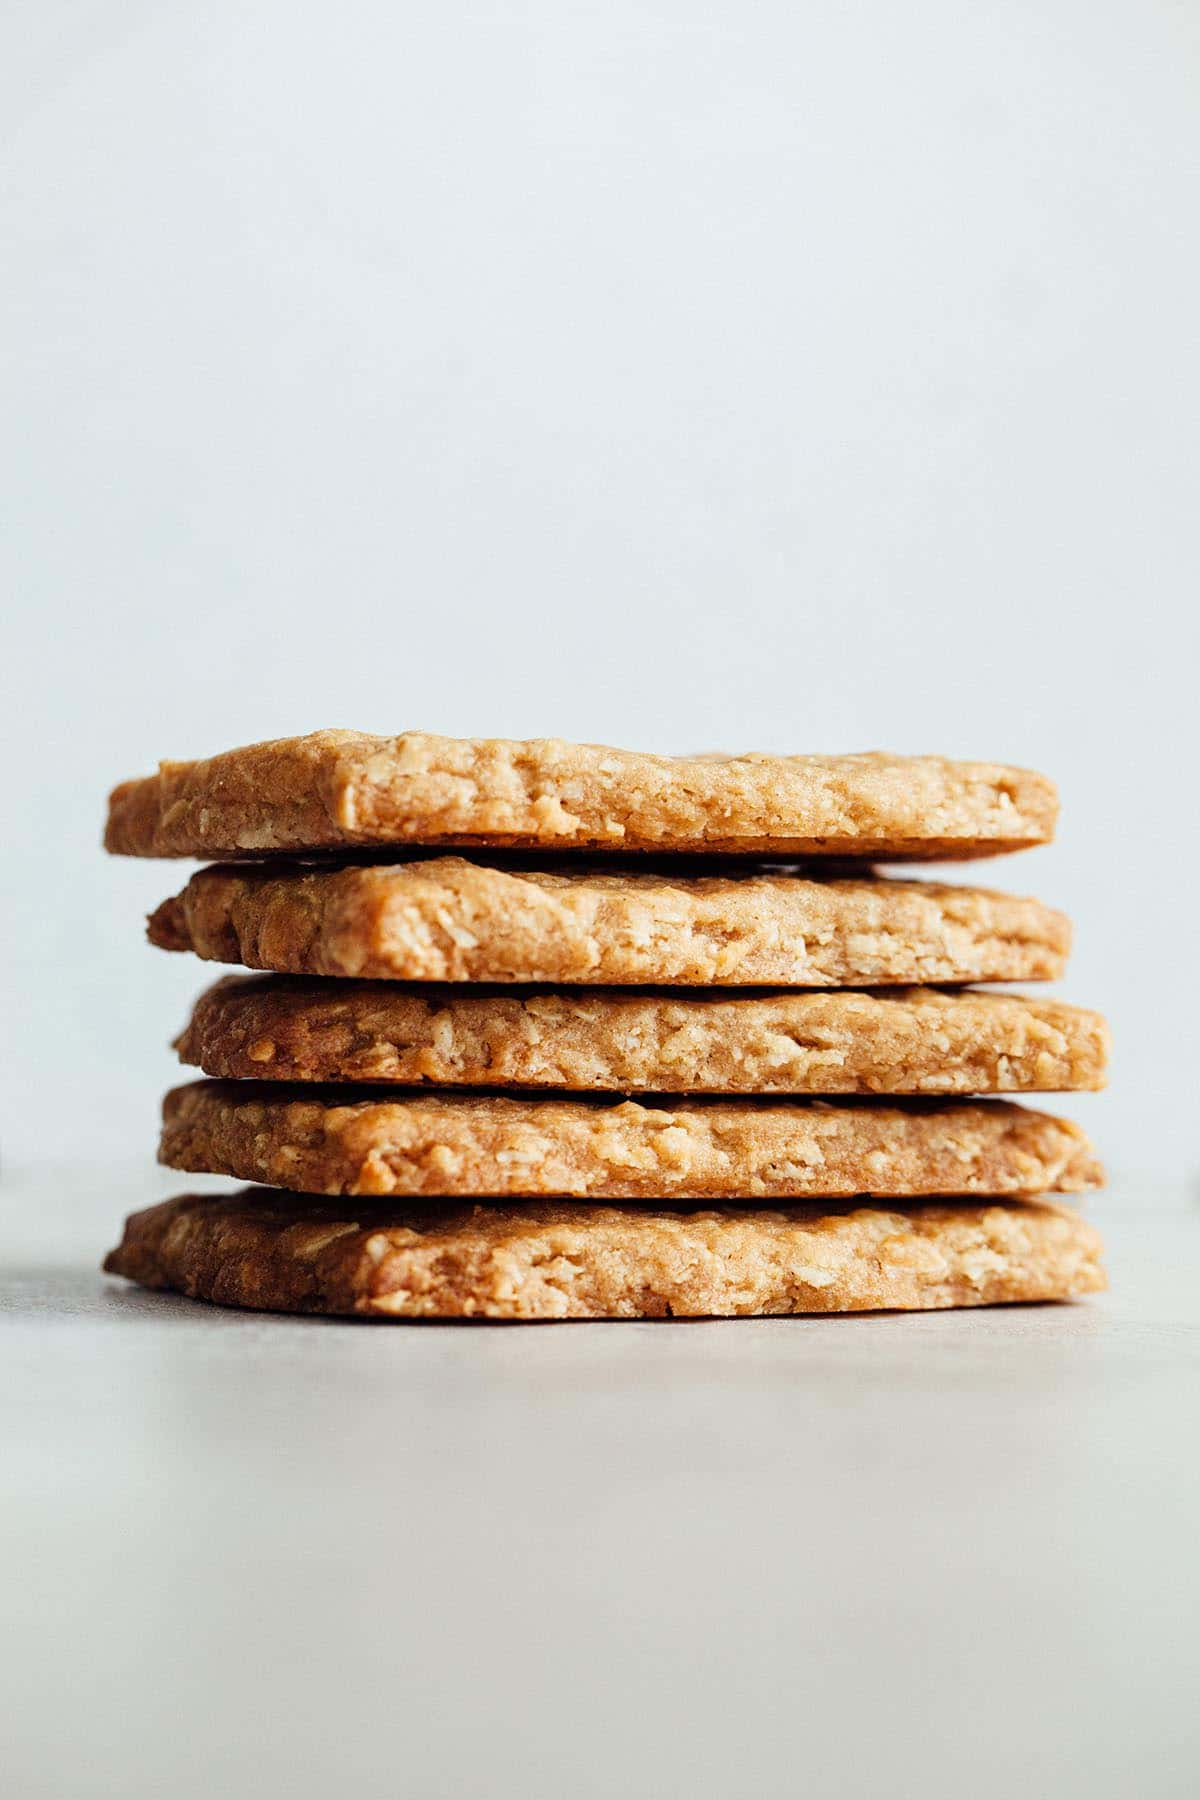 A stack of Nova Scotia oatcakes close up.